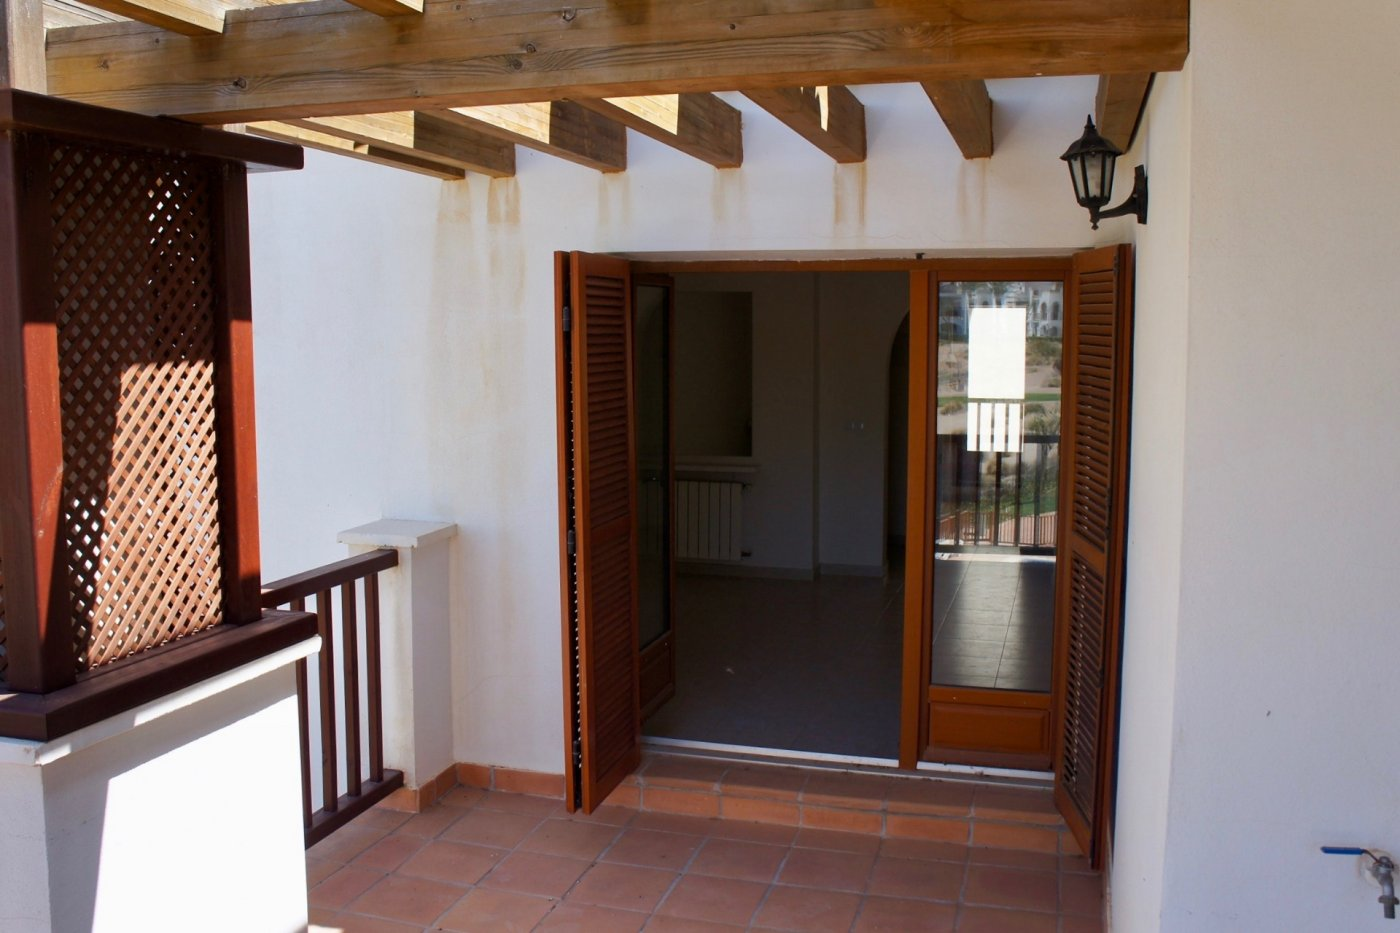 Image 4 Apartment ref 3265-02805 for sale in El Valle Golf Resort Spain - Quality Homes Costa Cálida